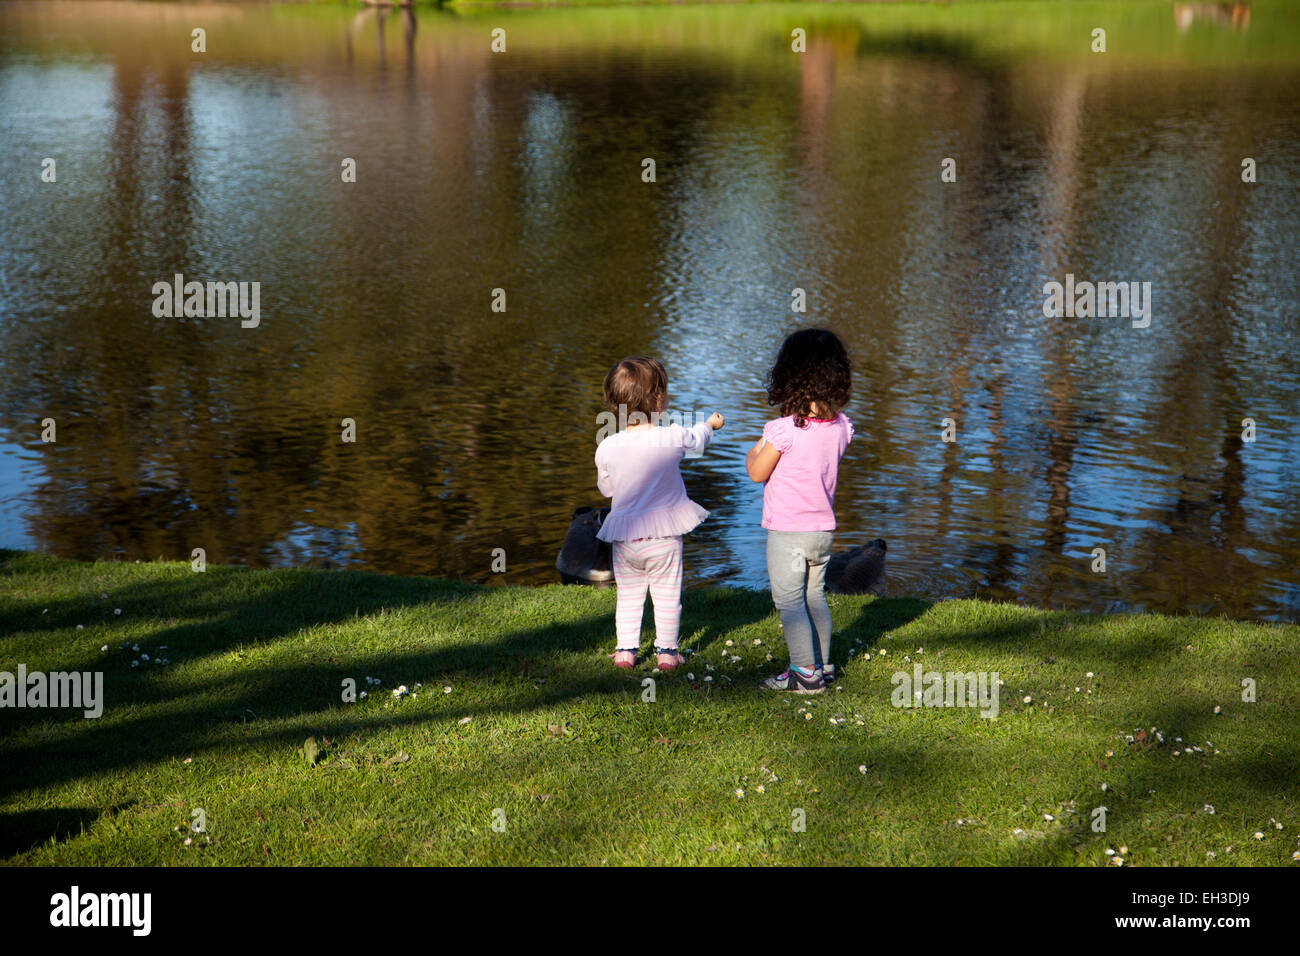 Two three year-olds feeding the geese at a pond, Novato, California, USA - Stock Image